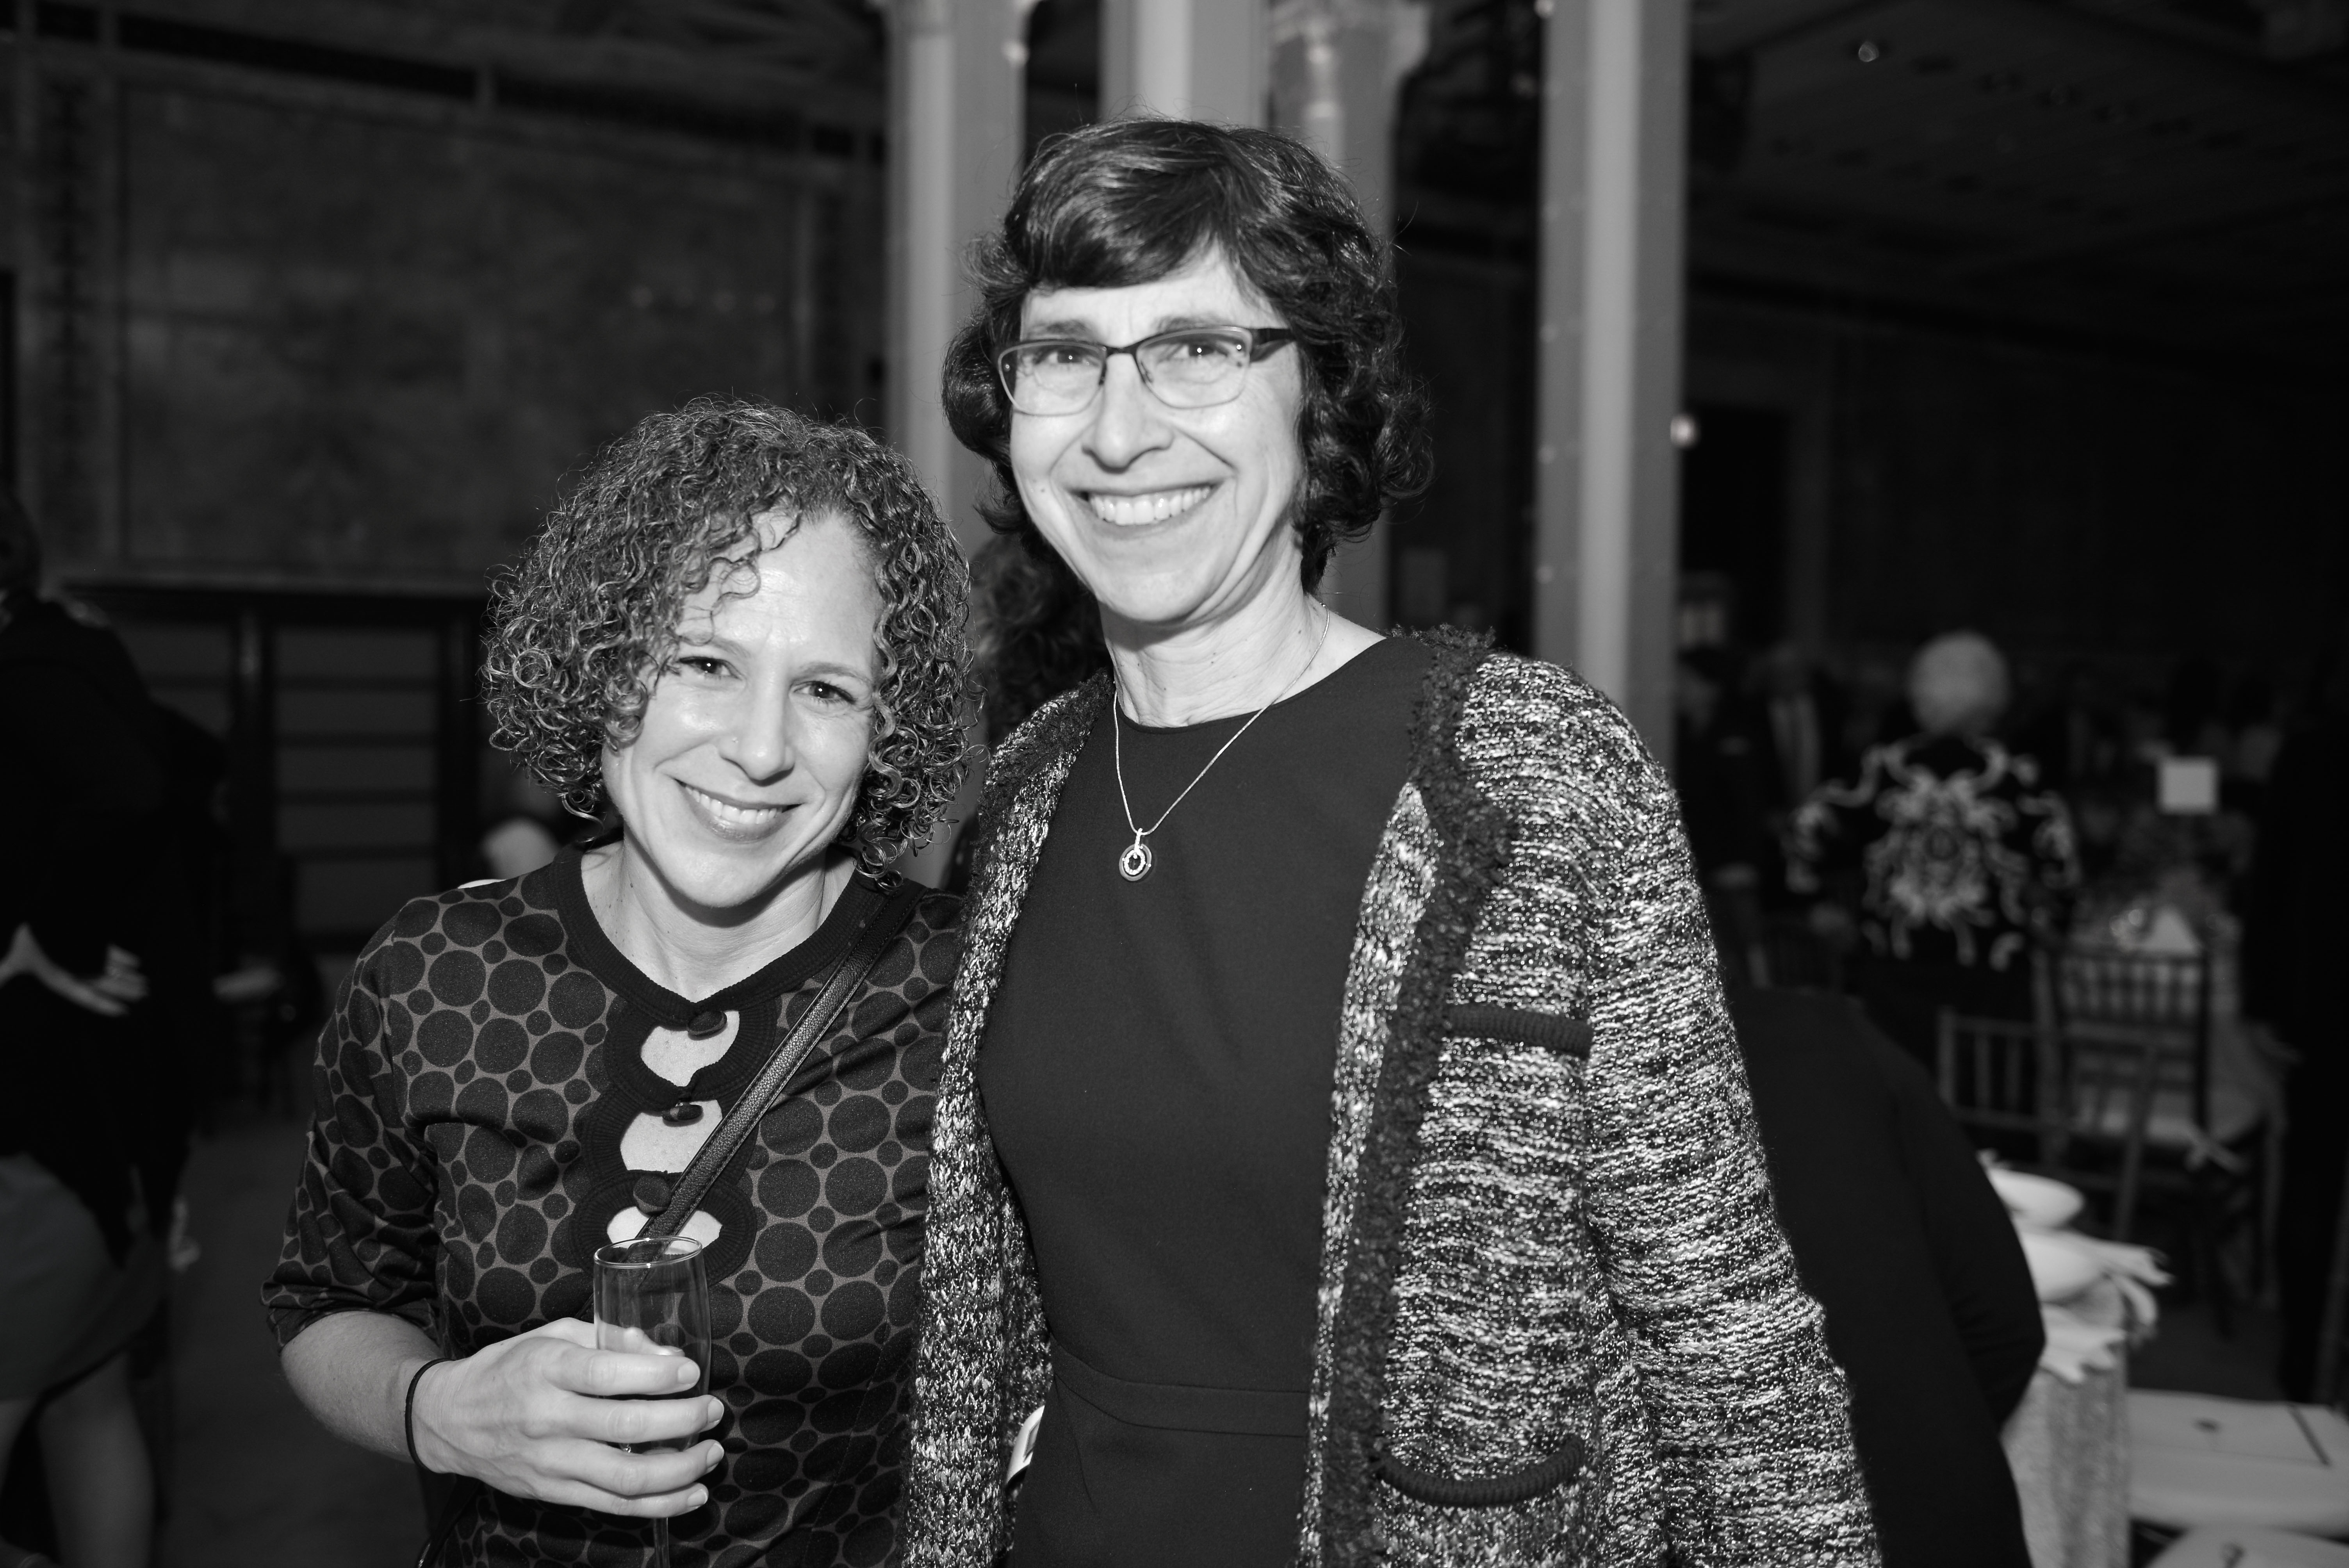 From left: Rebecca Minkus-Lieberman and 2010 Covenant Award Recipient Beth Huppin.